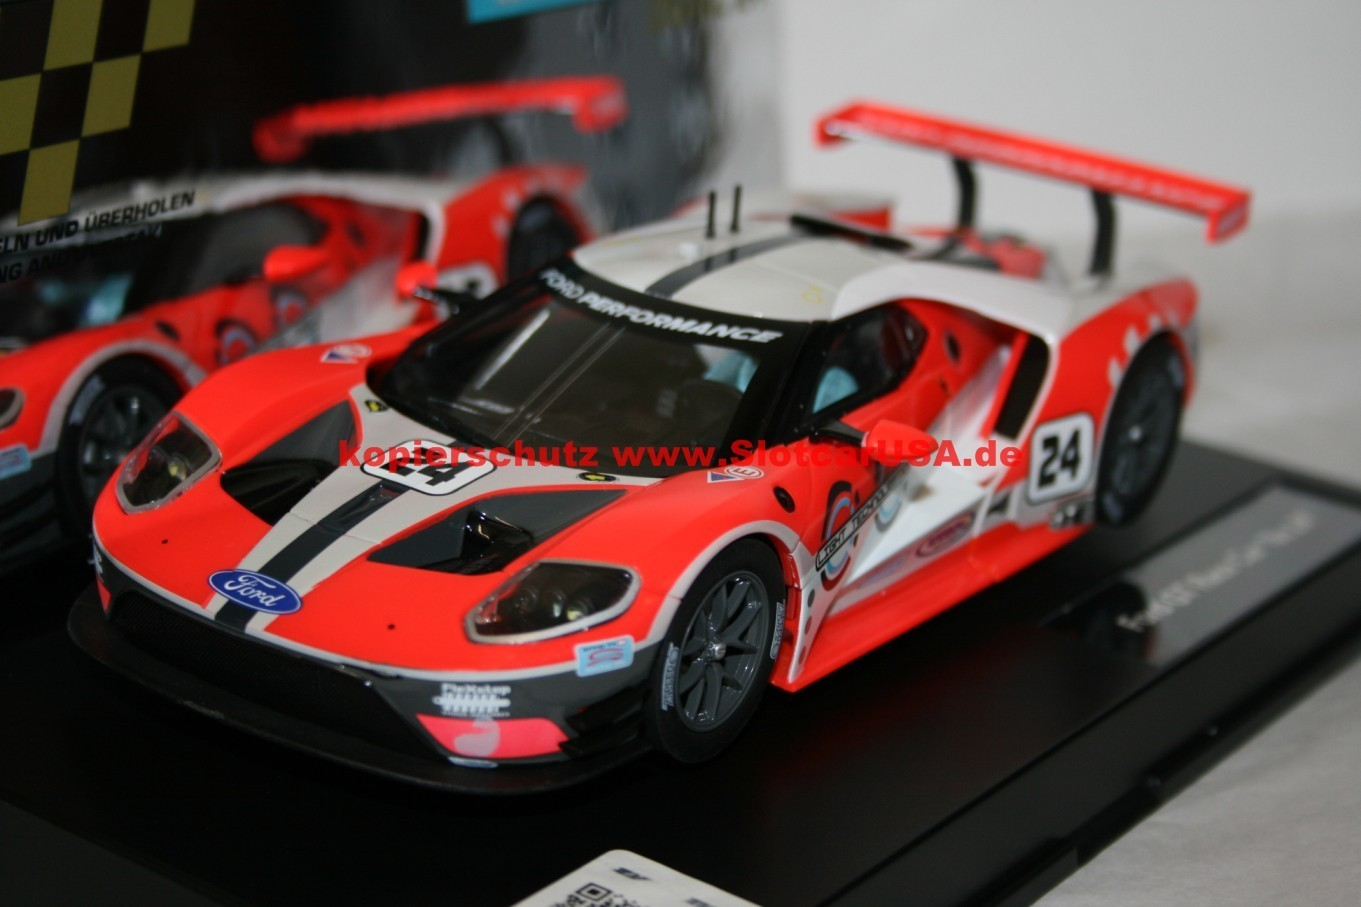 carrera digital 124 23841 ford gt race car nr 24 slotcarusa. Black Bedroom Furniture Sets. Home Design Ideas